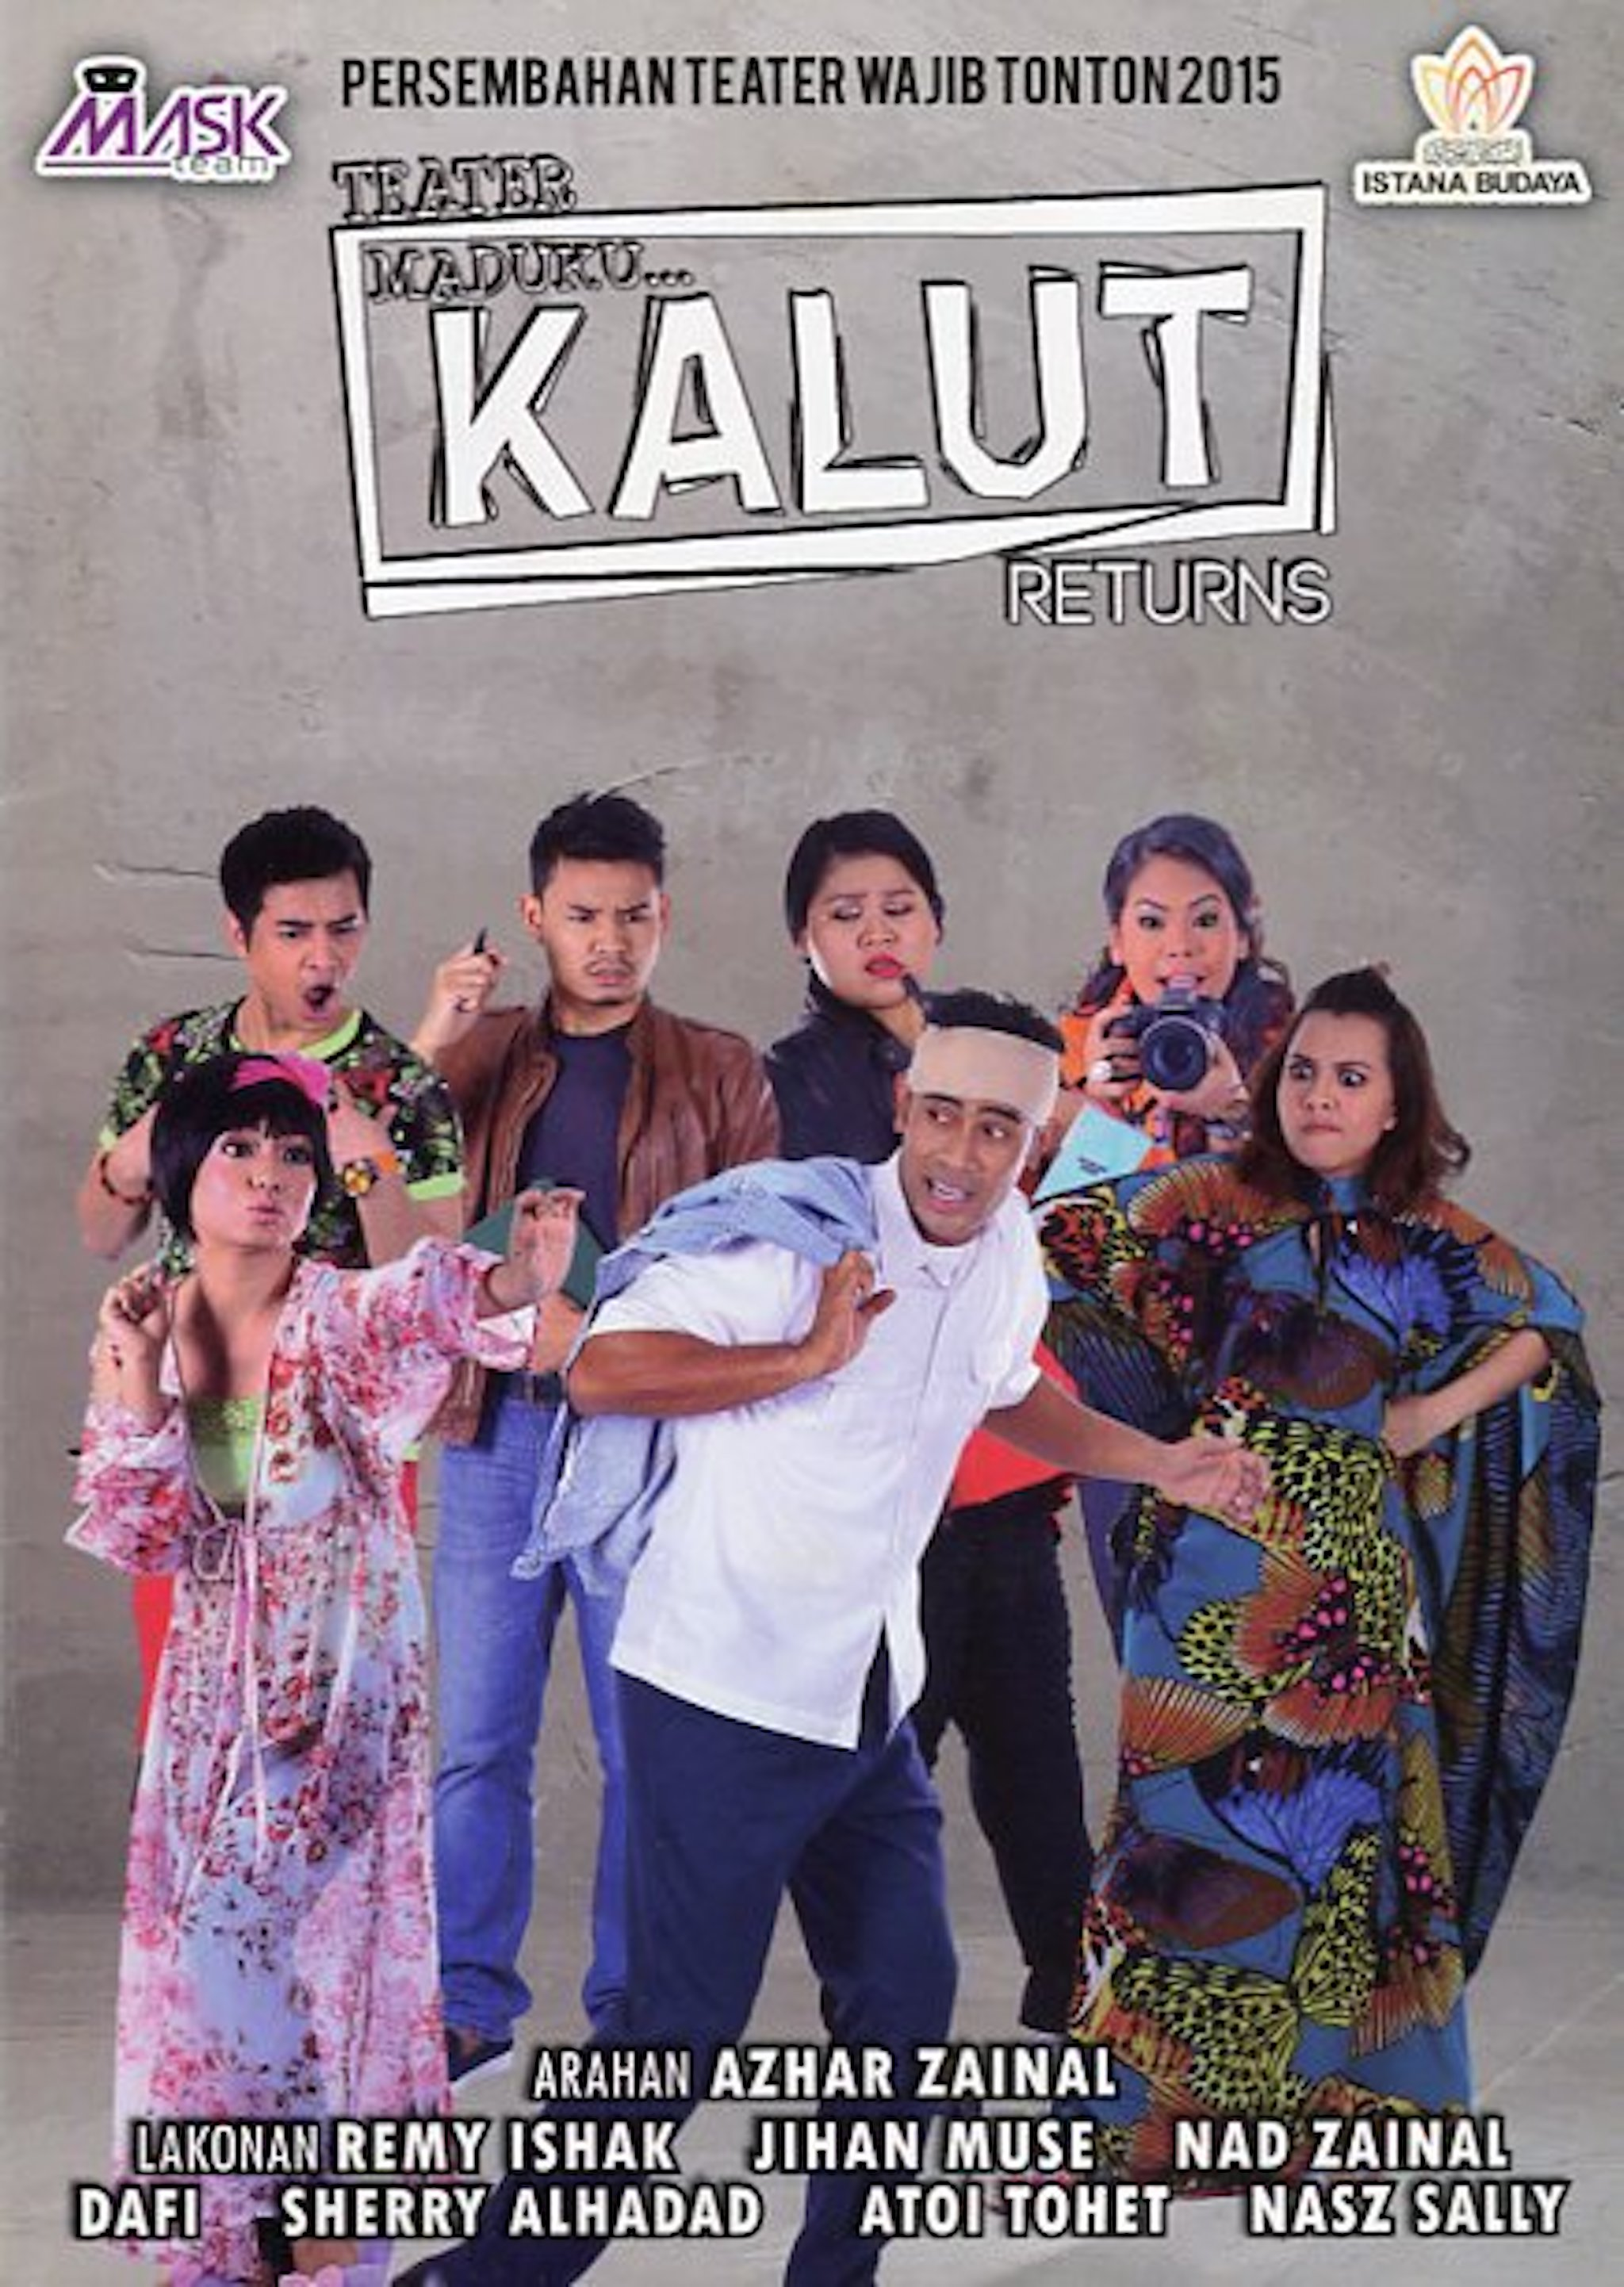 2015 Teater Maduku... Kalut Returns cover 1